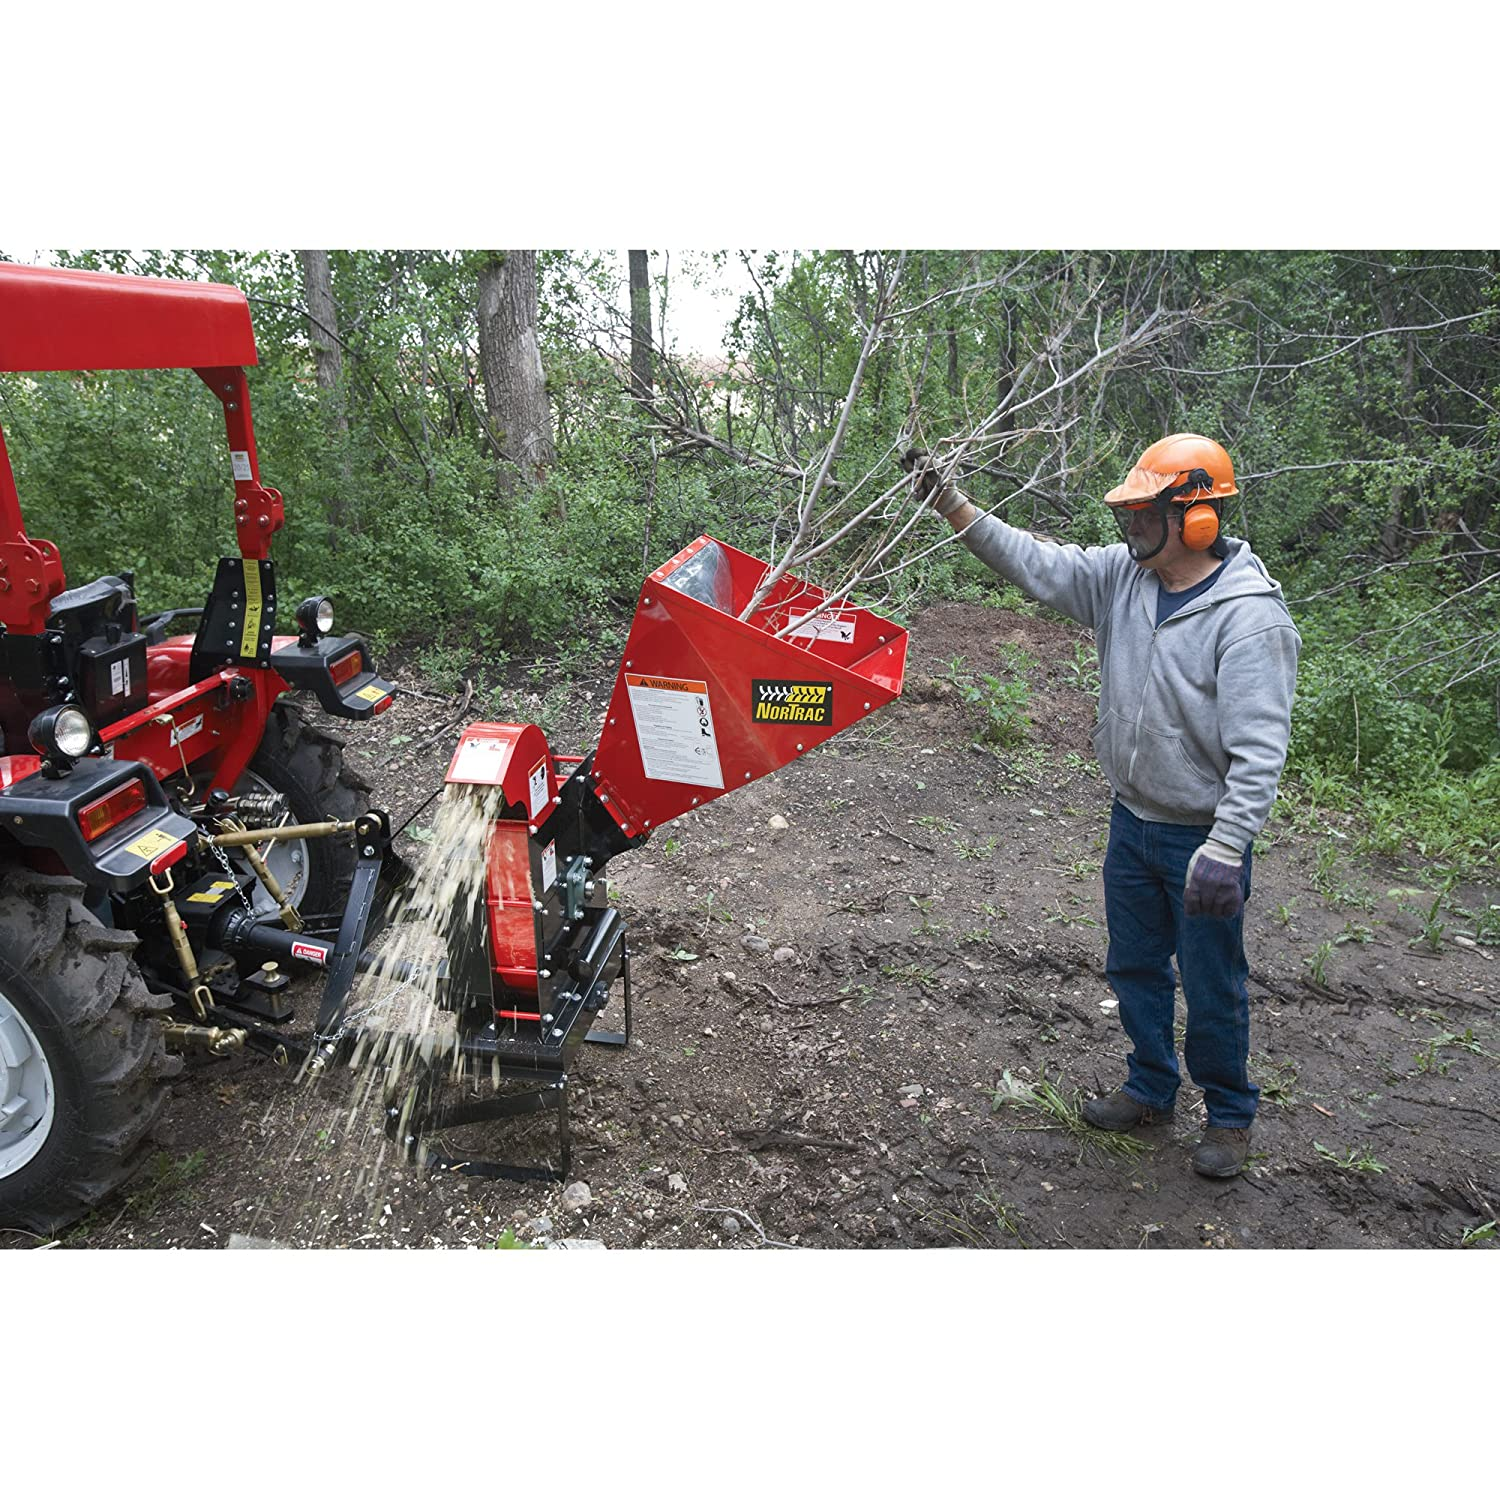 Bush Hog Accidents : Buying guides for heavy duty gardening tools coppafeel